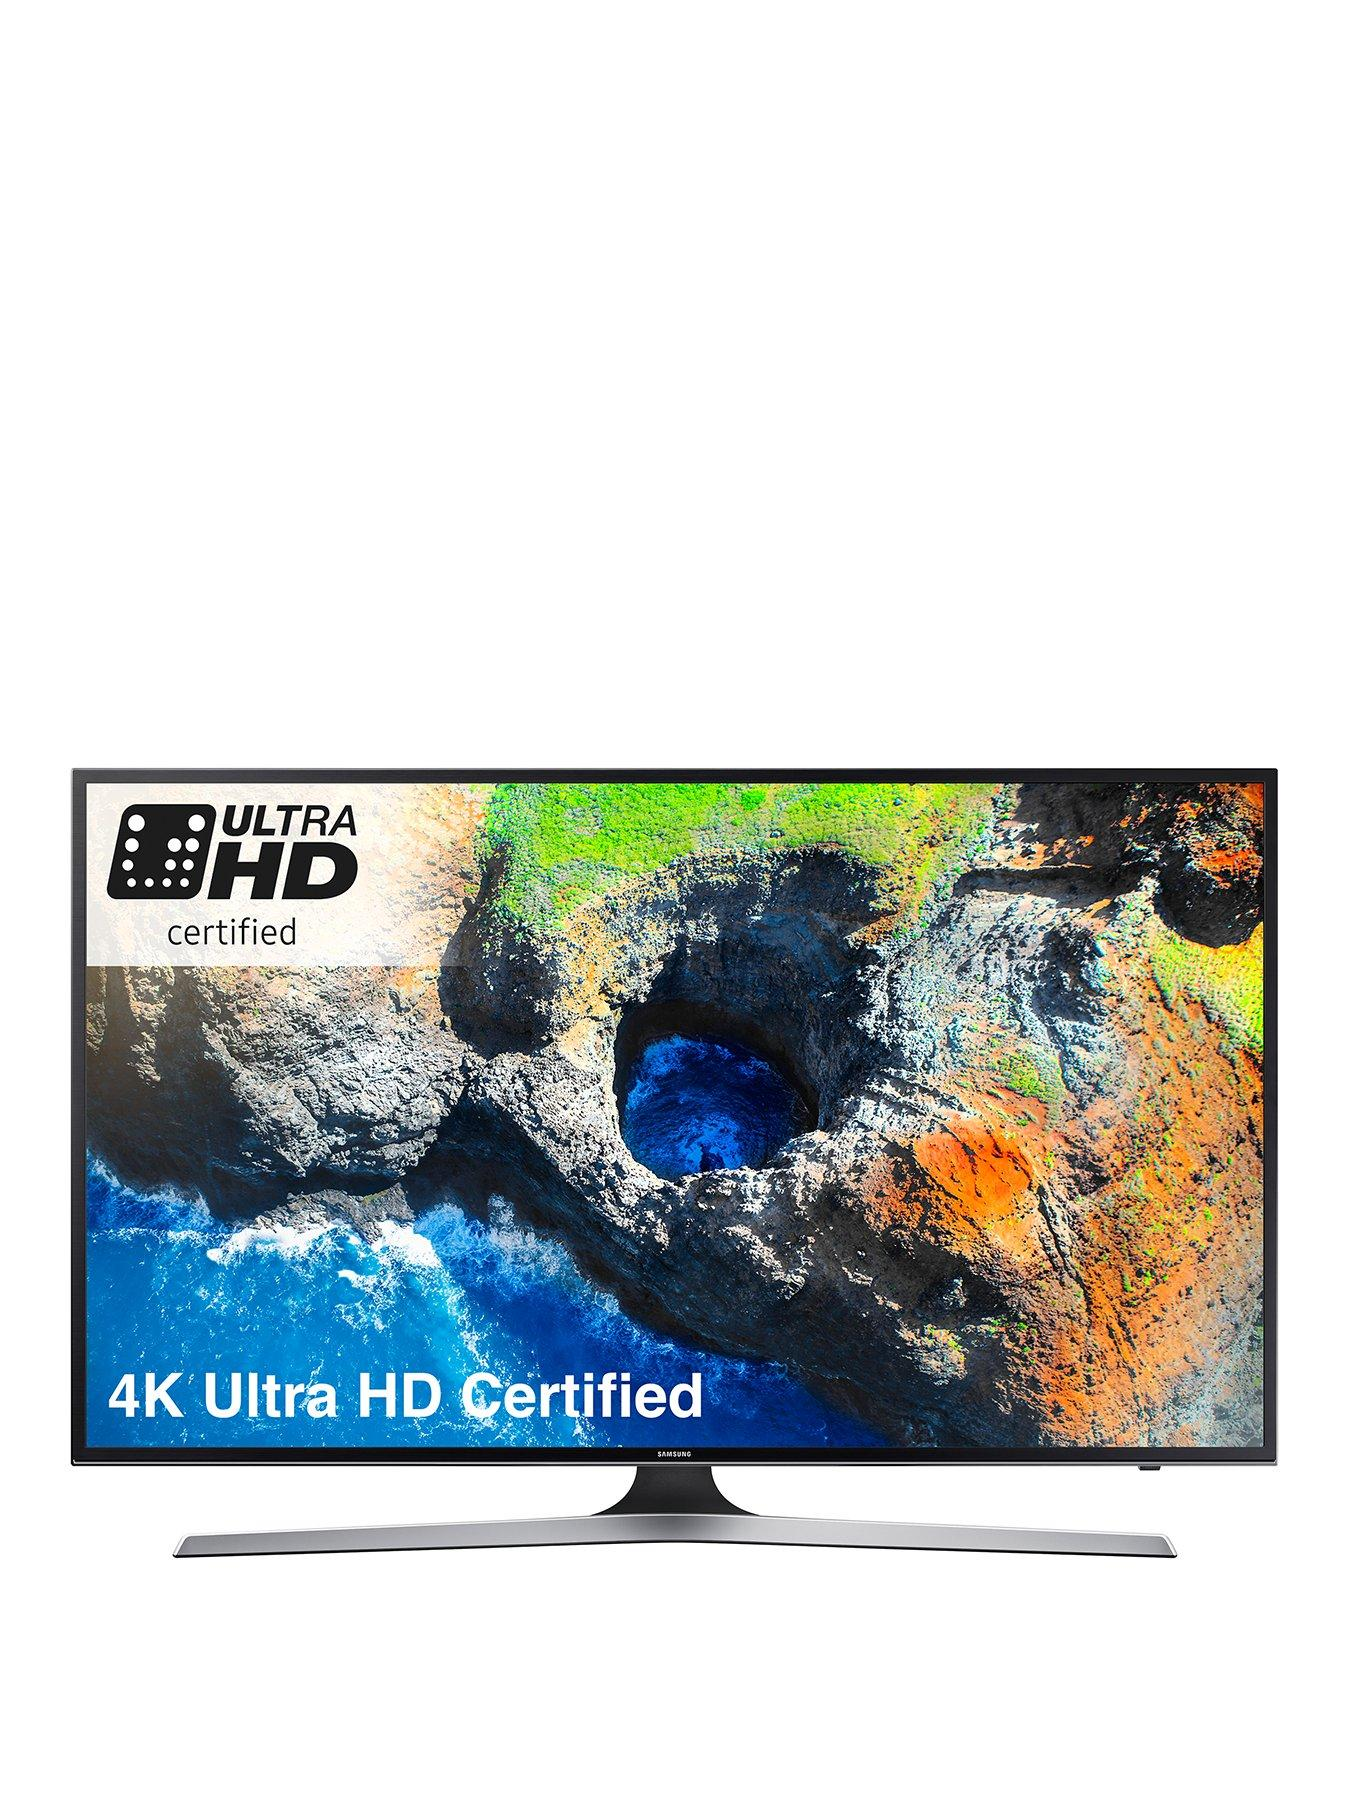 UE40MU6120KXXU 40 inch, 4K Ultra HD Certified, Smart TV